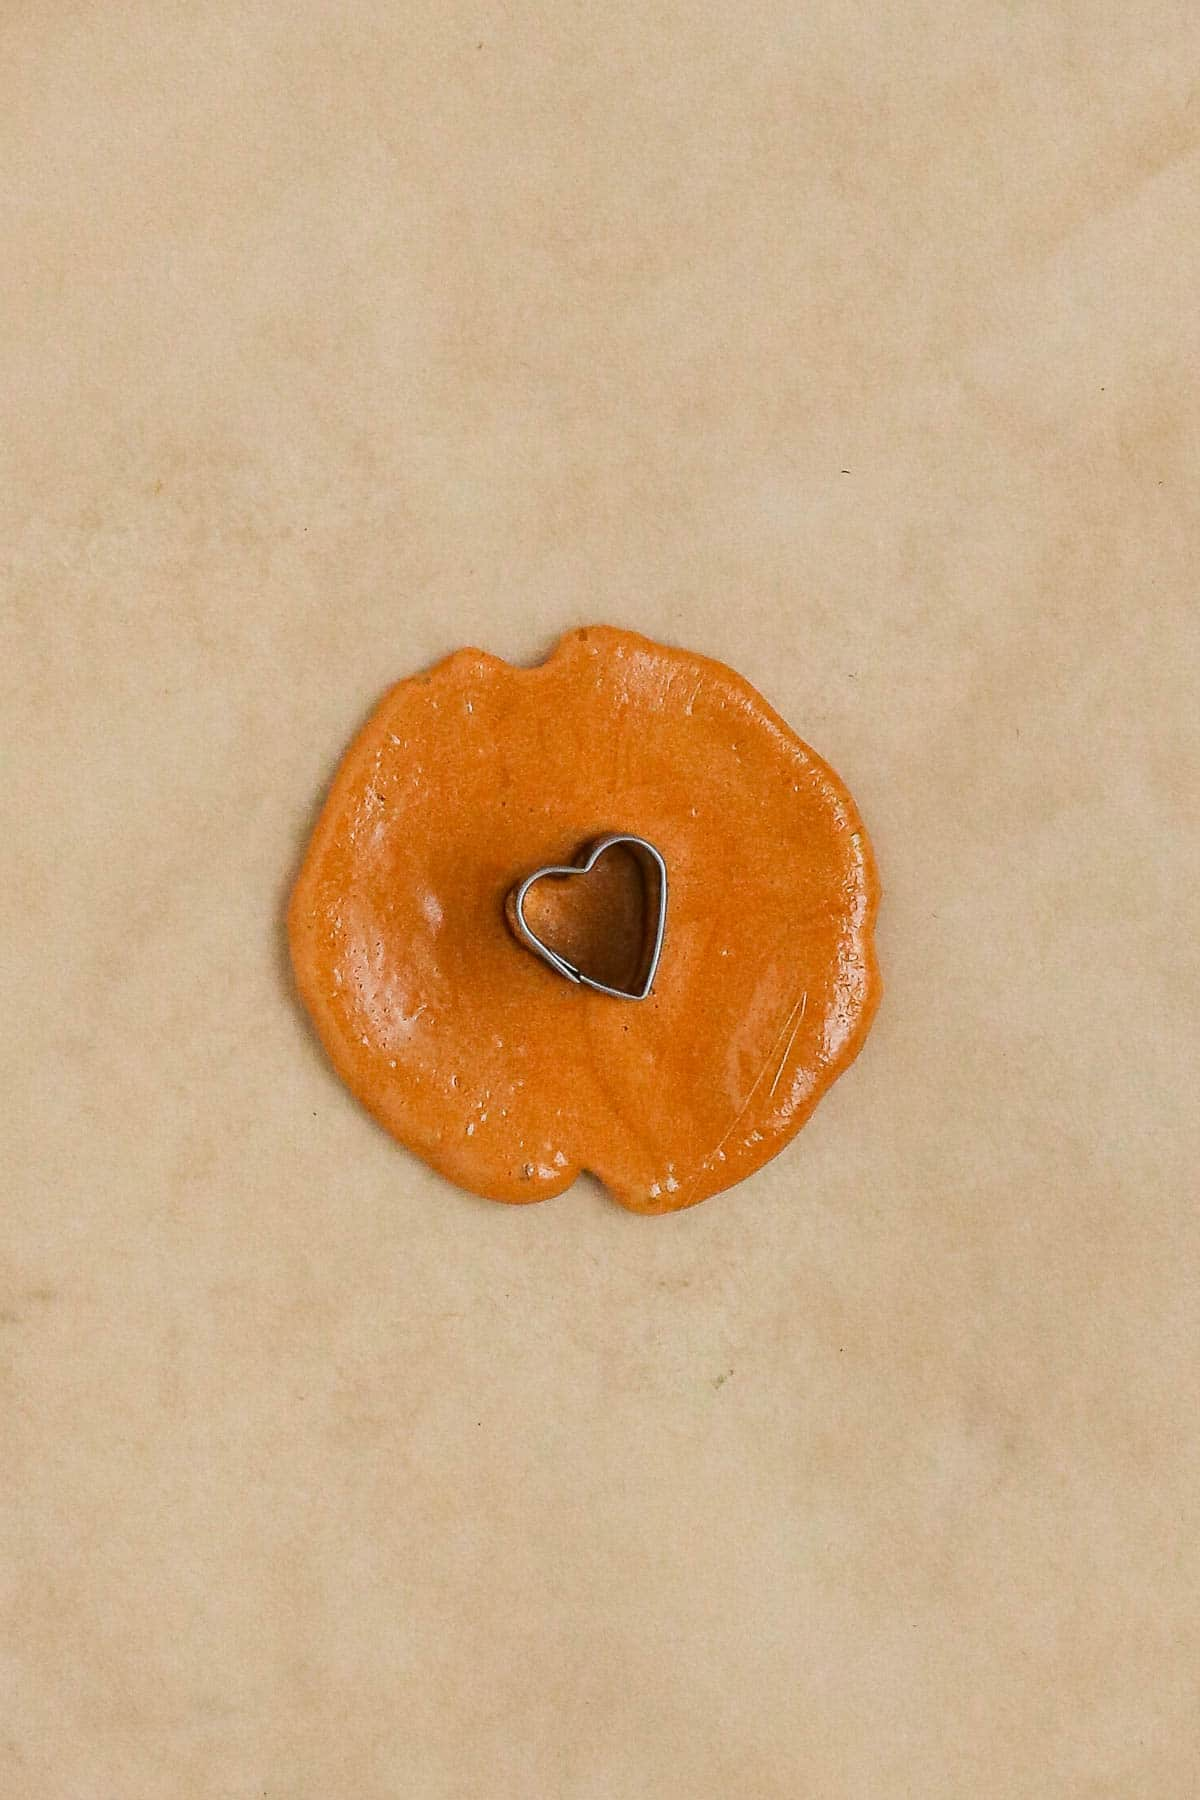 a heart-shaped cookie cutter imprinting the dalgona.